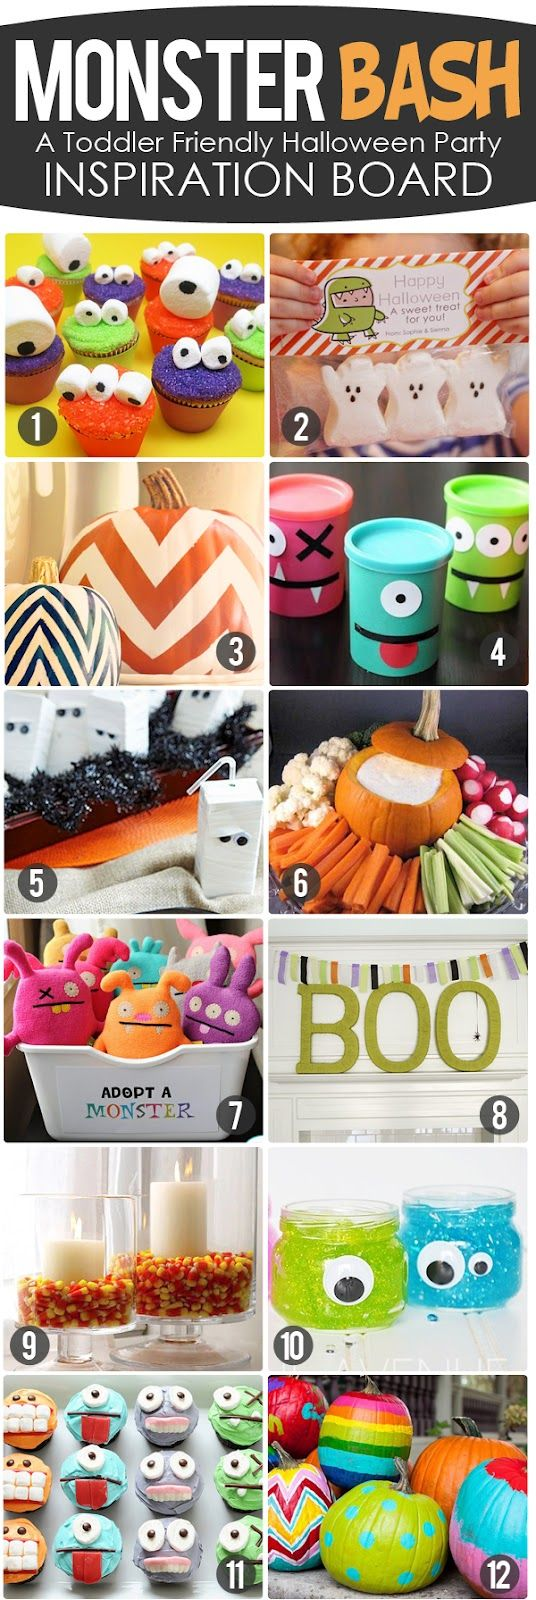 monster bash!- toddler friendly halloween party inspiration board